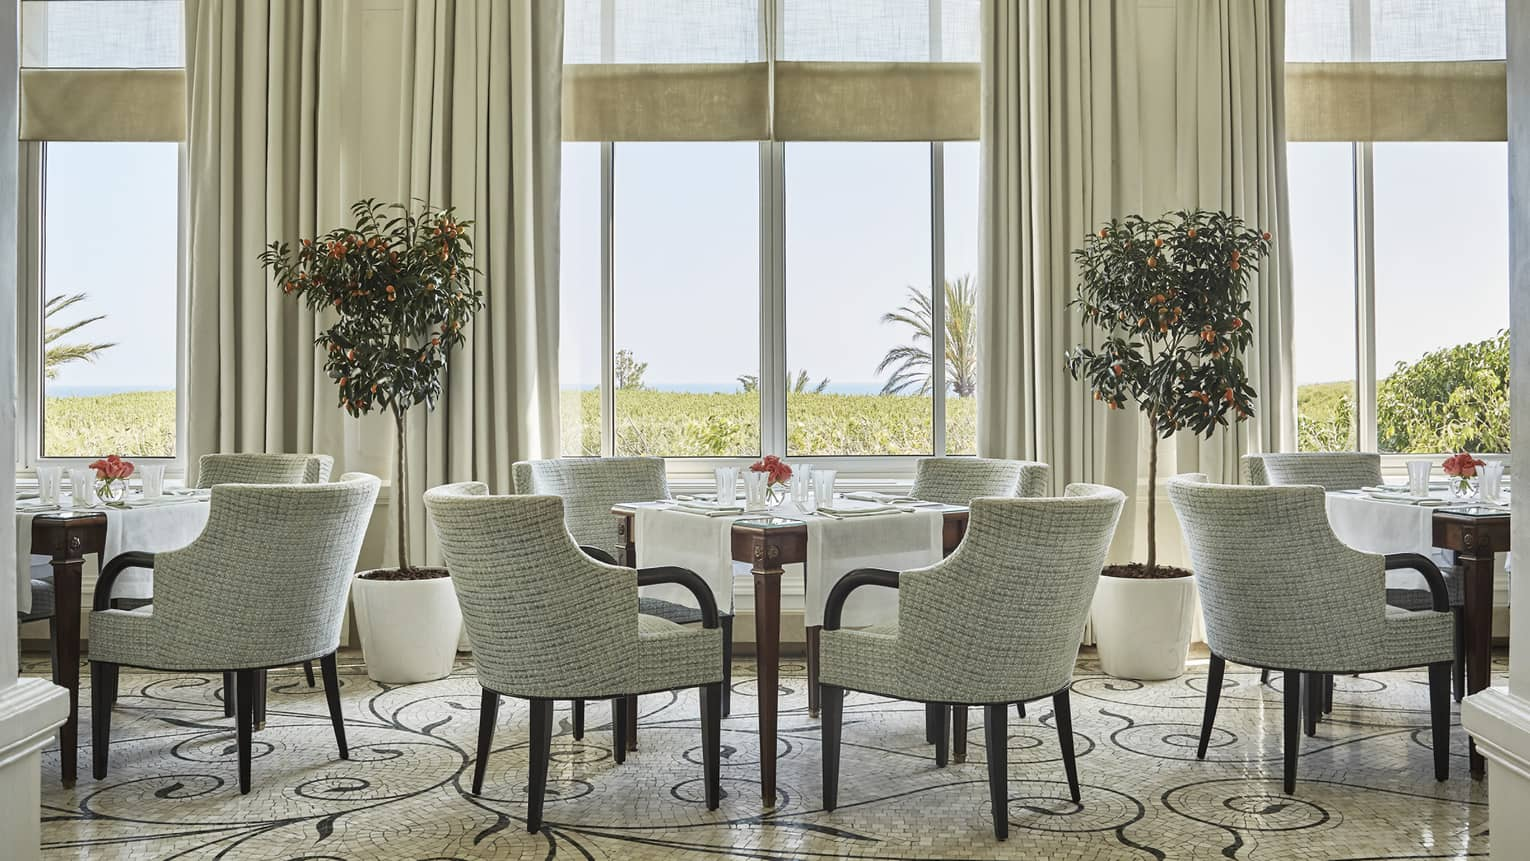 Dining chairs and tables under tall, sunny windows, potted trees in La Veranda